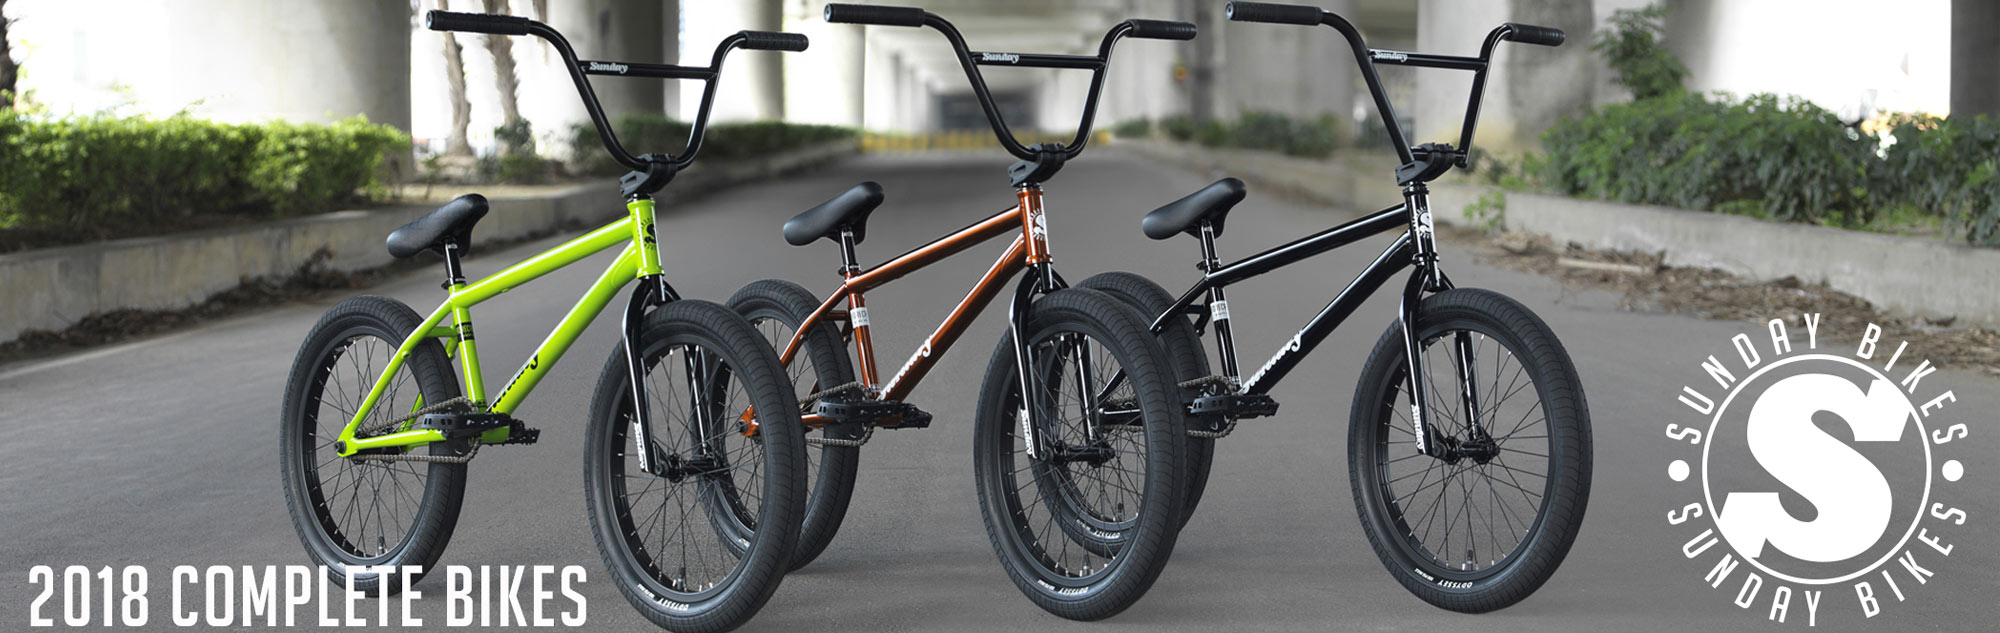 The 2018 Sunday BMX Bikes now available at Albe's BMX Bike Shop